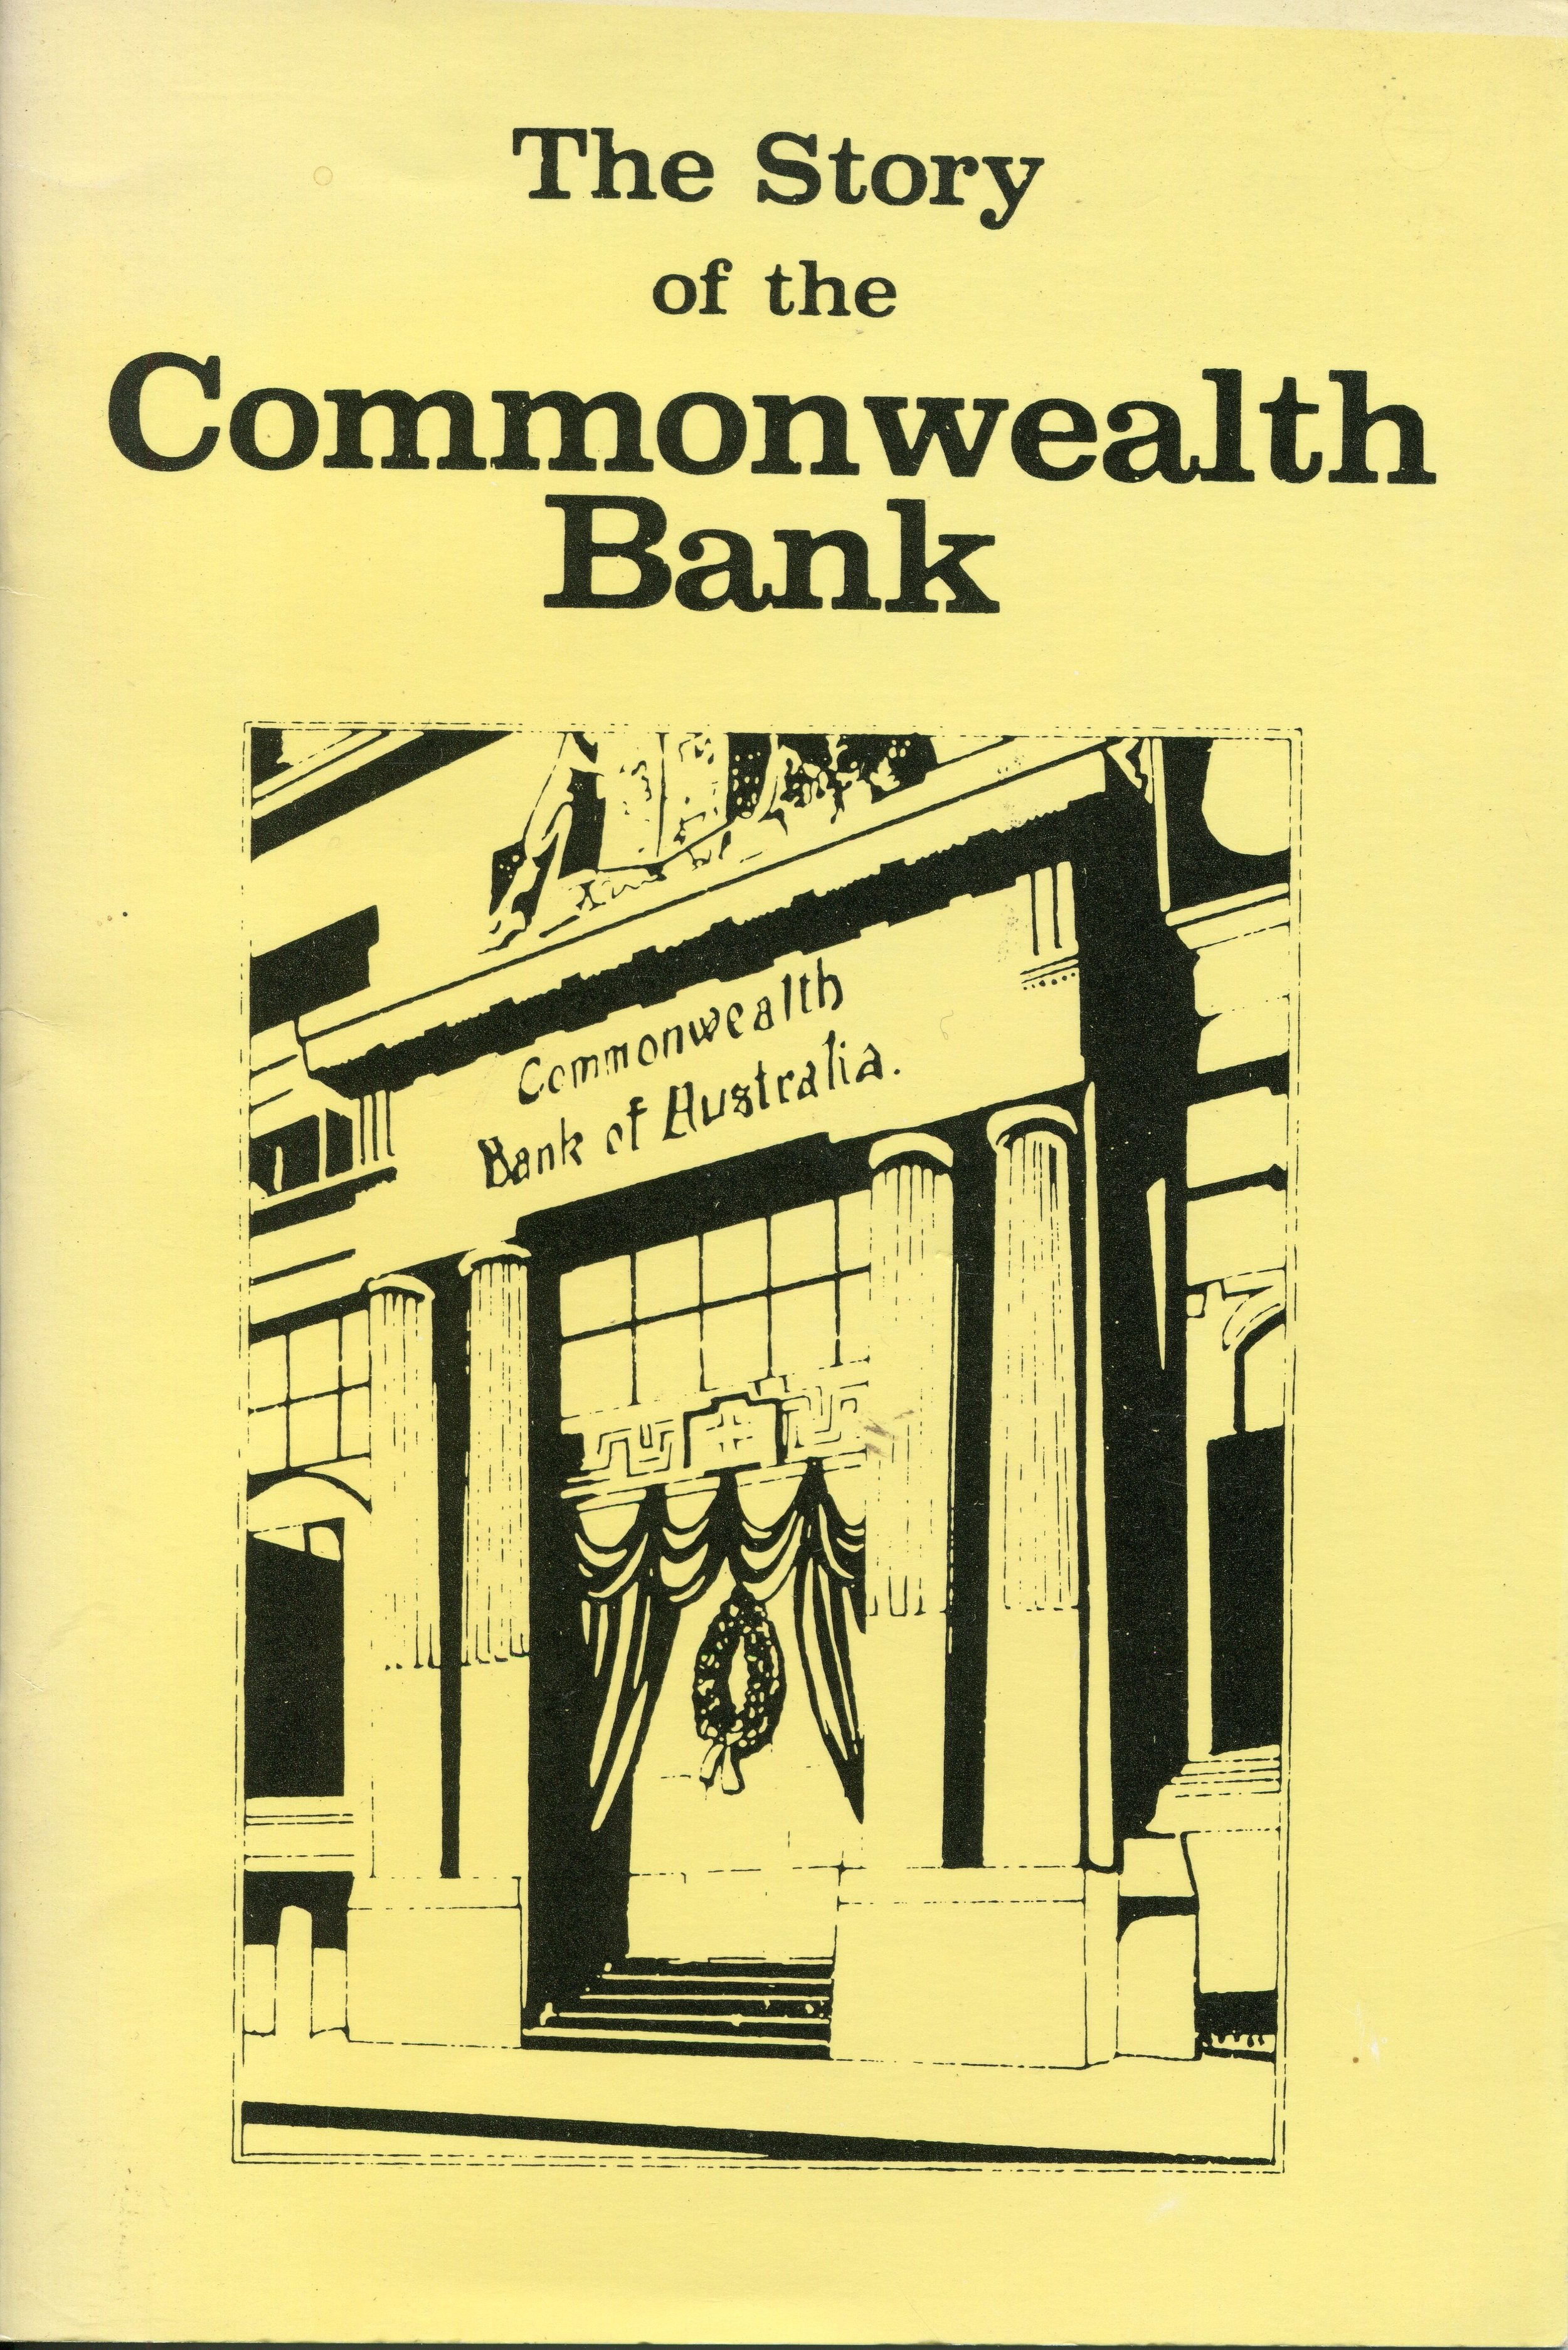 The story of the Commonwealth Bank   By D.J. Amos